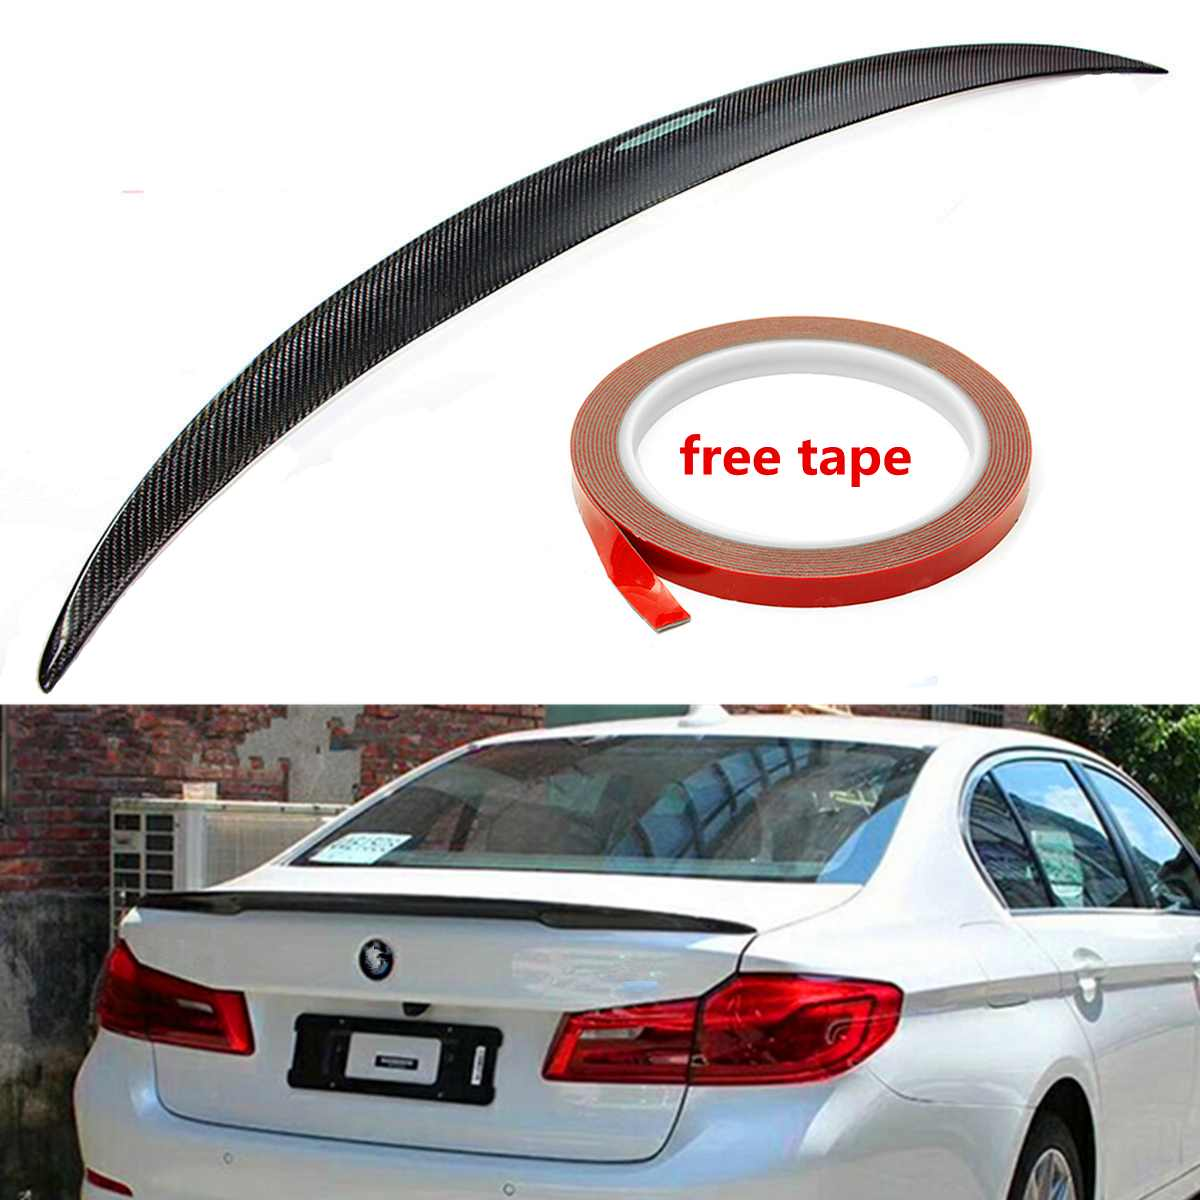 High quality Car Real Carbon Fiber Rear Trunk Lid Spoiler Wing Boot Spoiler Wing for <font><b>BMW</b></font> <font><b>G30</b></font> <font><b>530i</b></font> 540i 5 Series 2017-2018 image